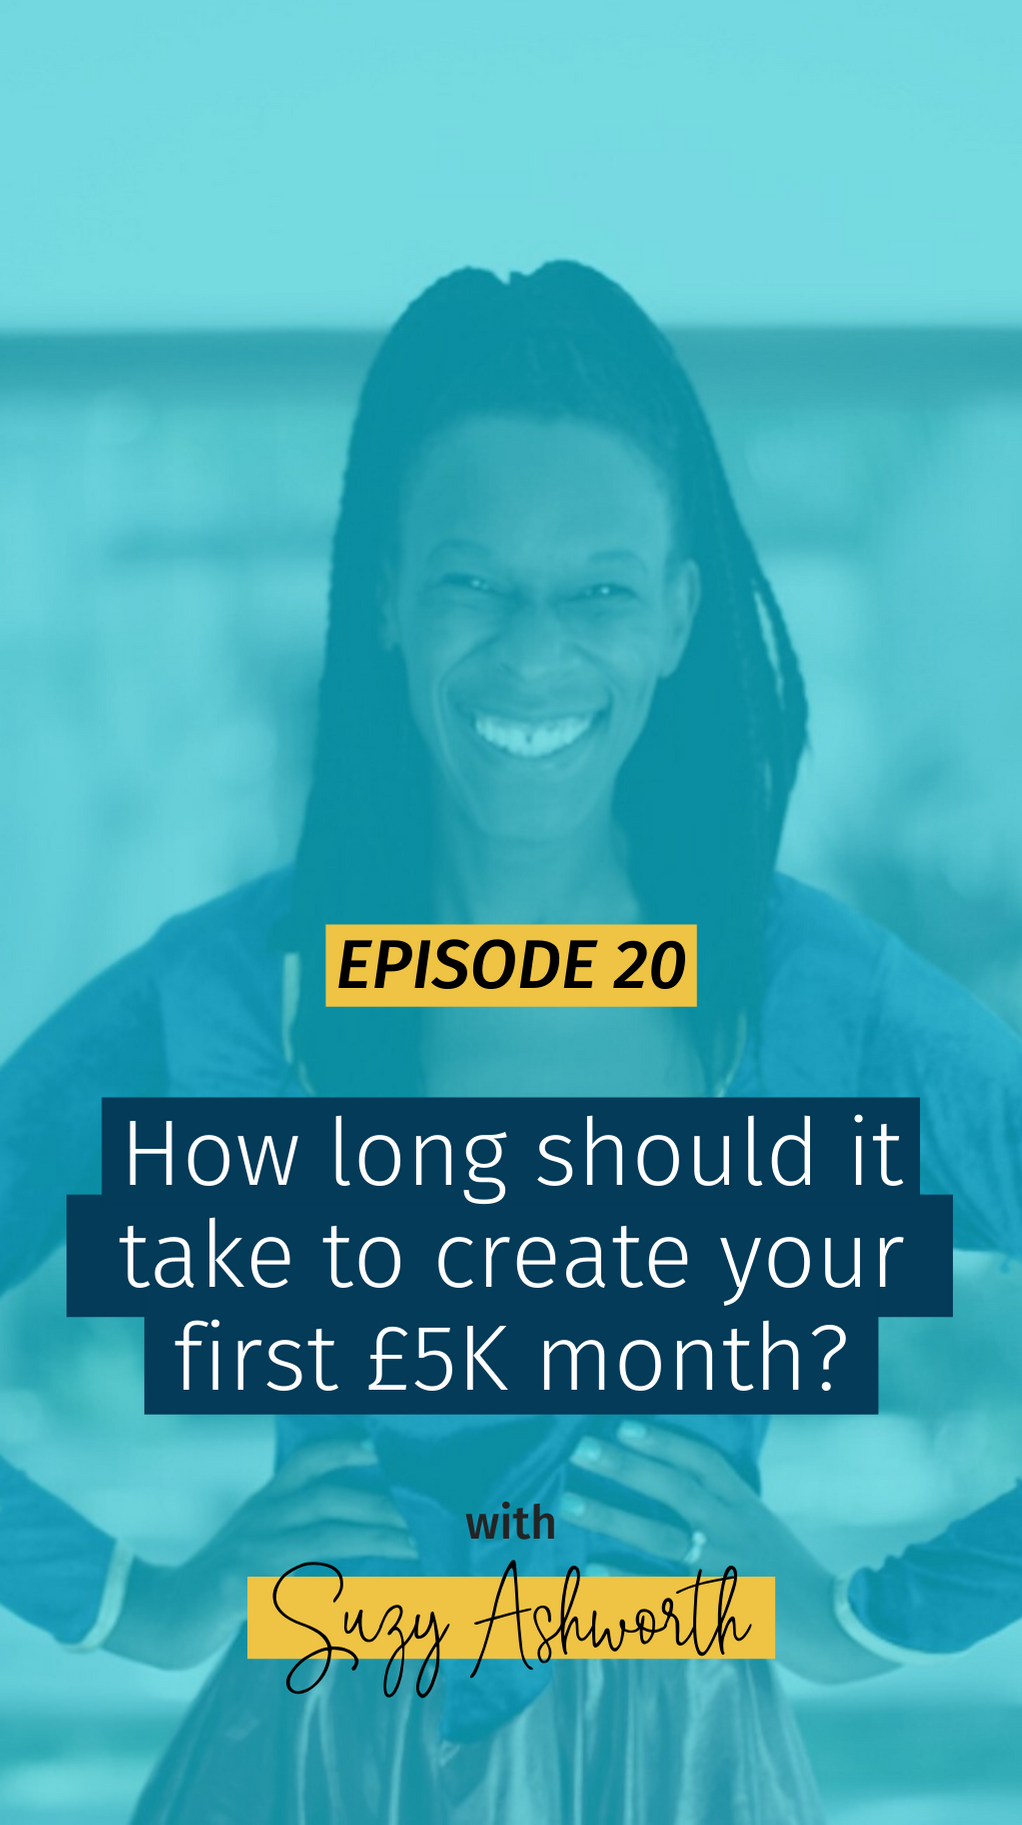 020 How long should it take to create your first £5K month?